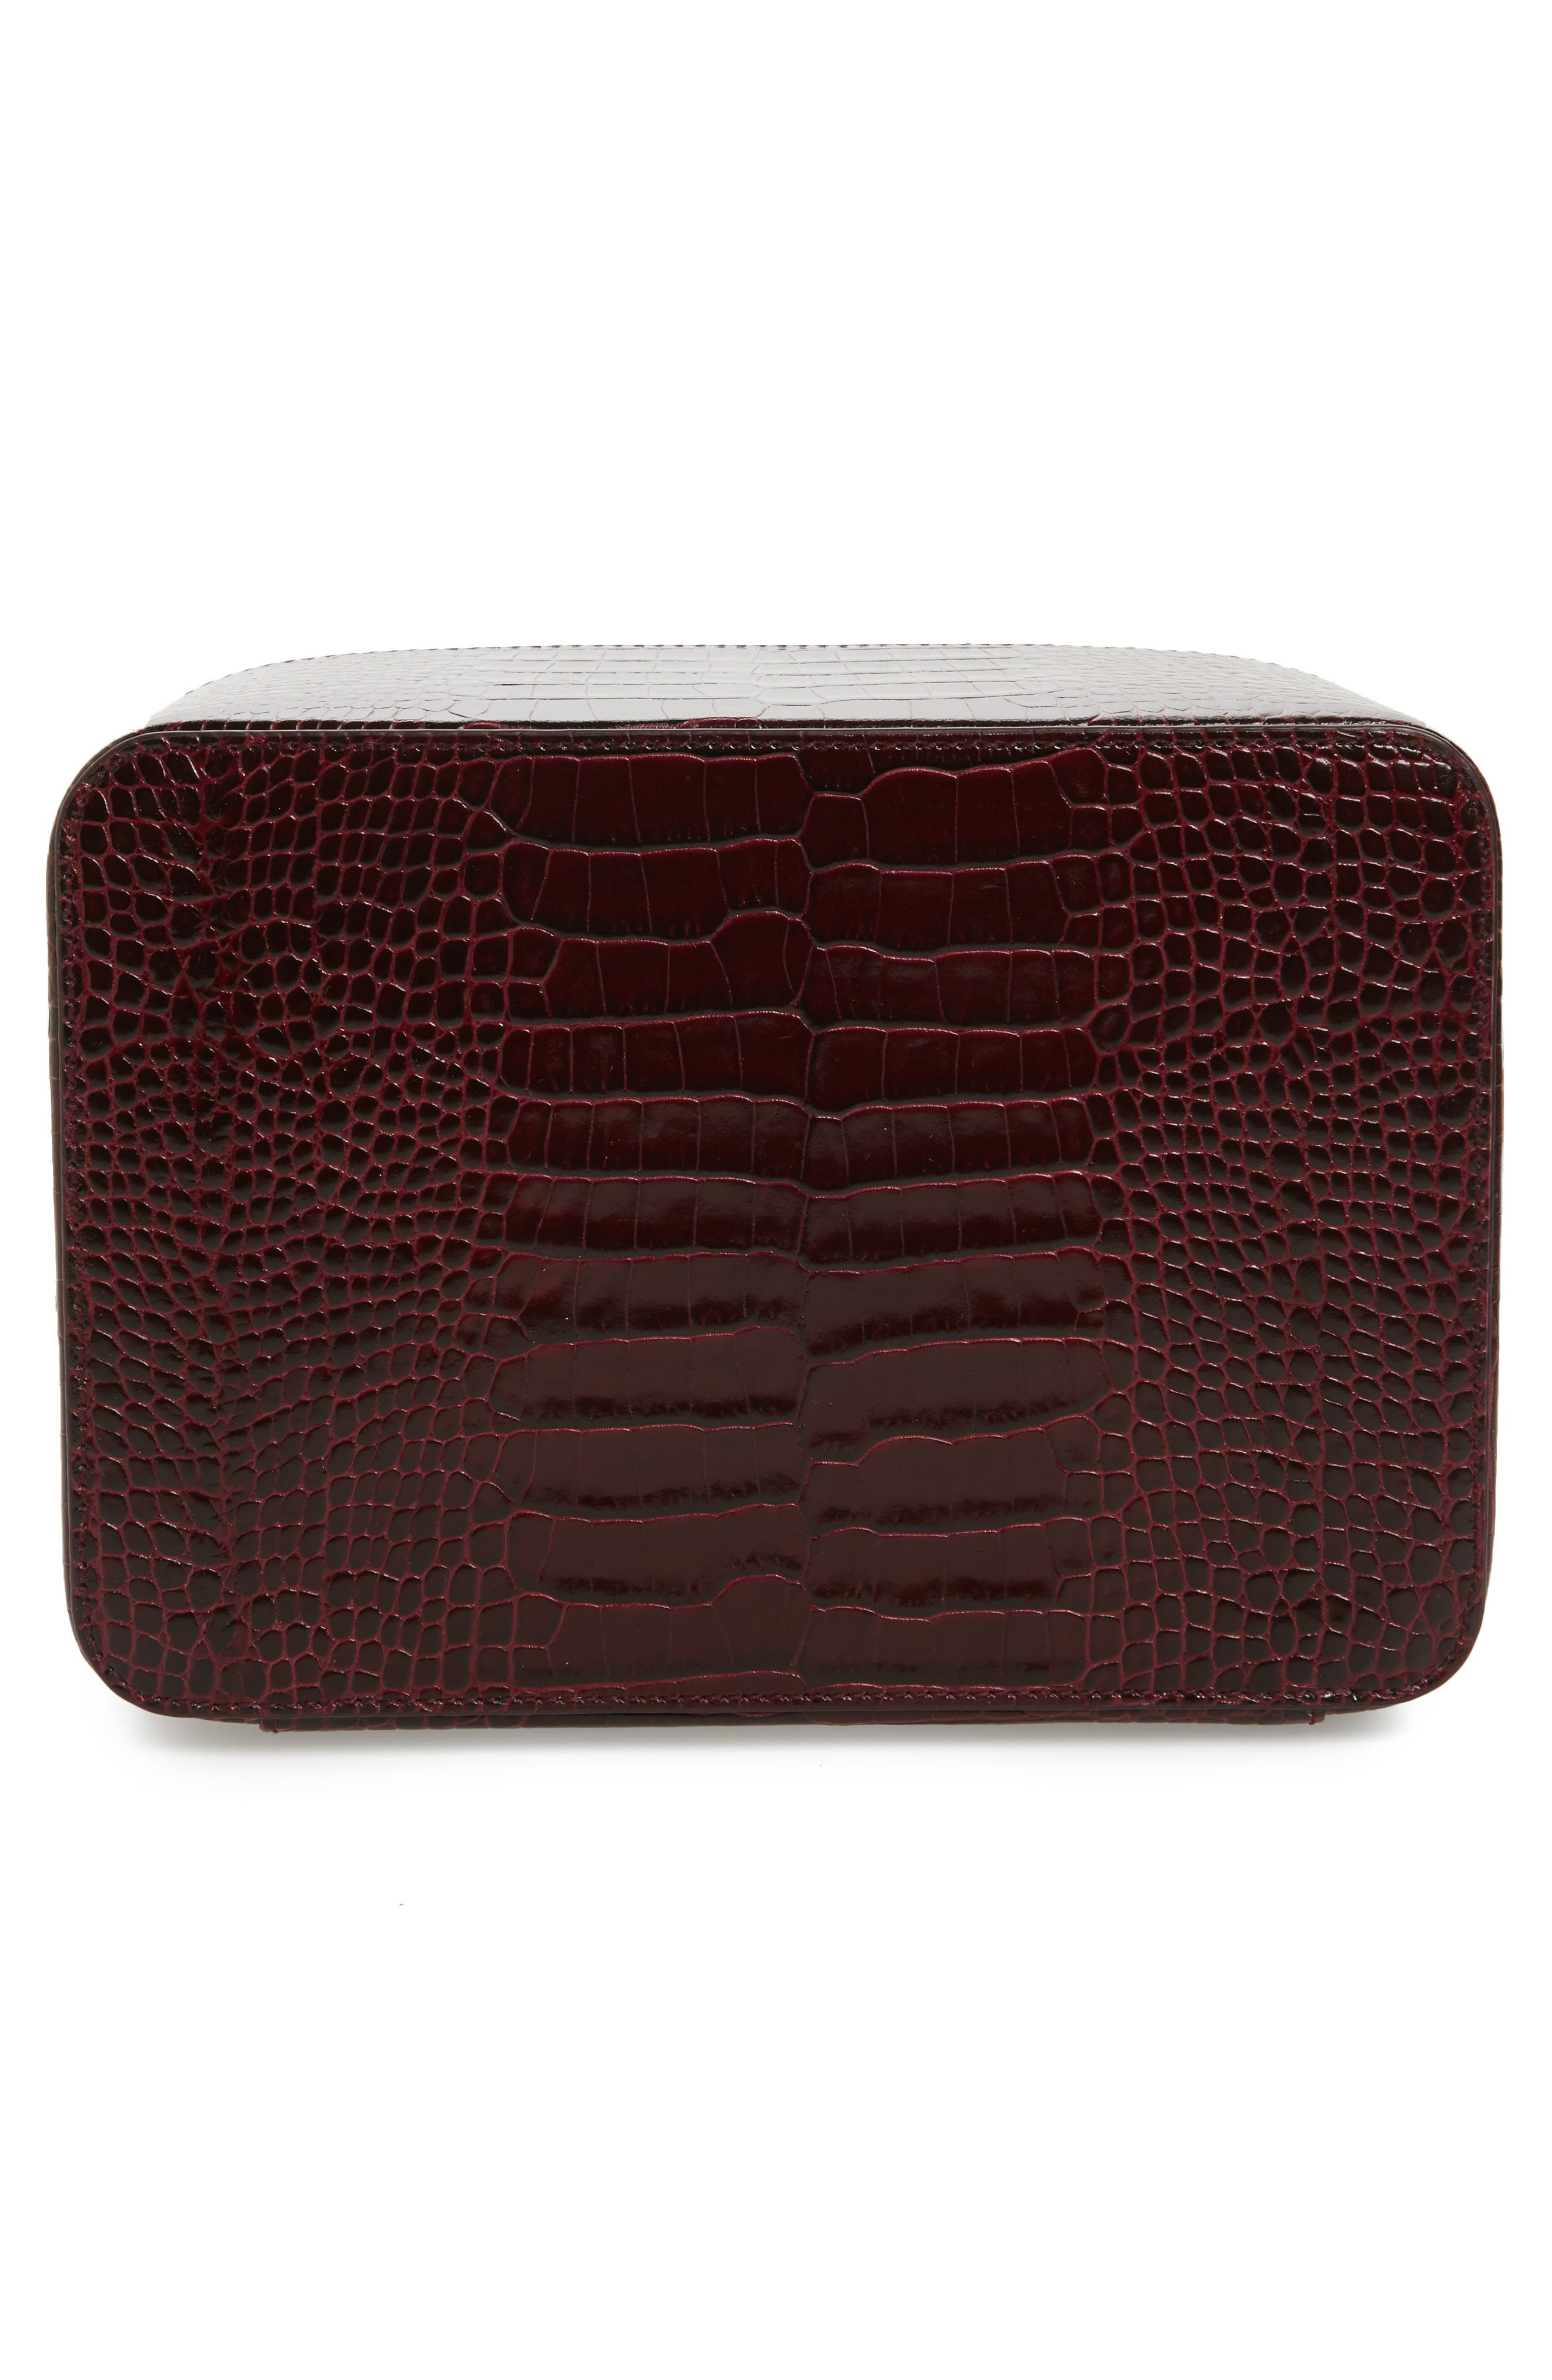 Mara Square Croc Embossed Leather Travel Case,                             Alternate thumbnail 2, color,                             930